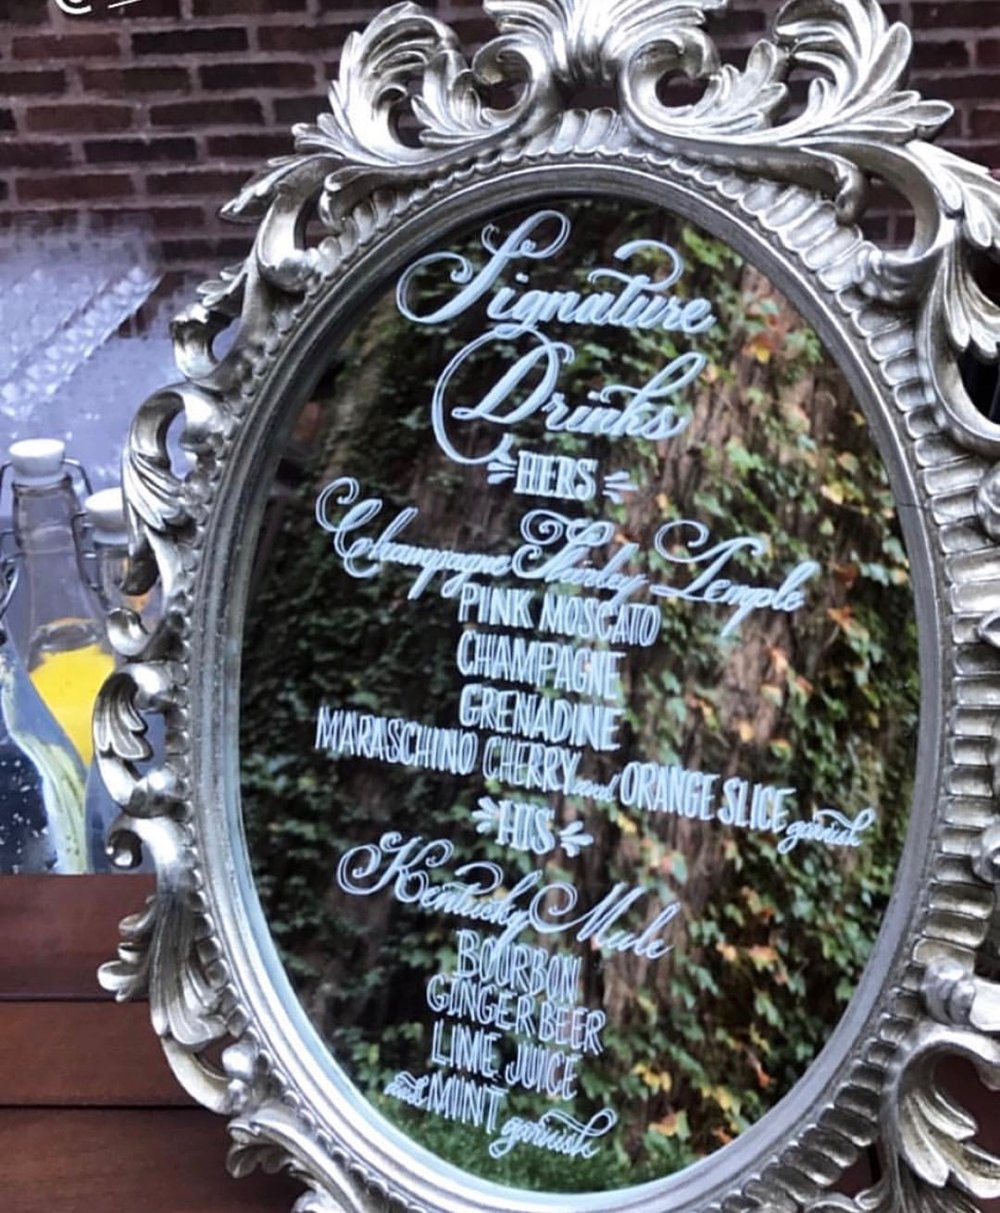 "9.5"" x 17"" Oval Mirror. Silver, metal, ornate frame. Perfect for a menu or signature drinks. $25 rental fee. 